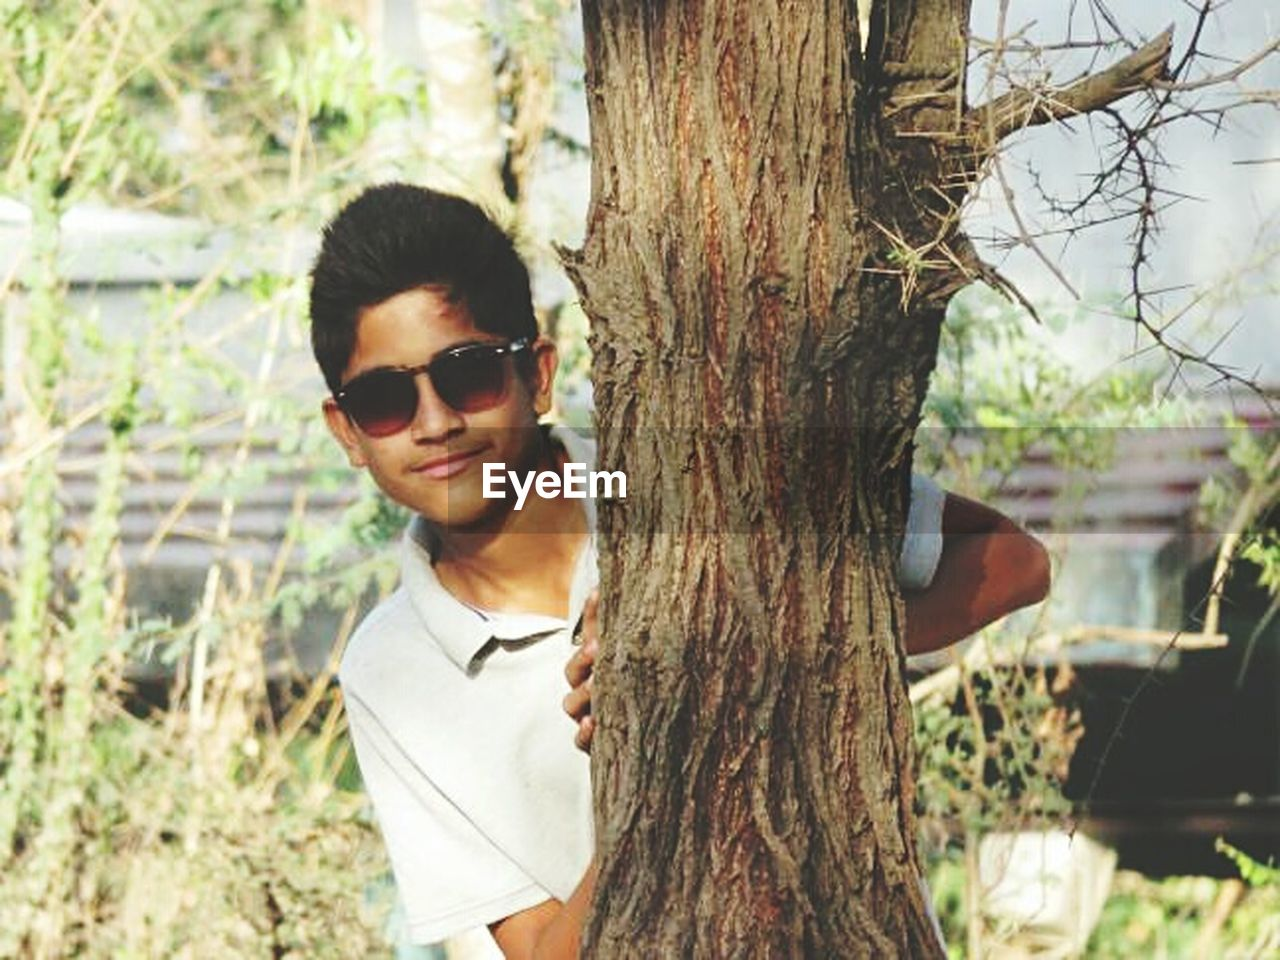 sunglasses, tree trunk, tree, one person, real people, leisure activity, day, young adult, outdoors, casual clothing, focus on foreground, lifestyles, young men, nature, standing, portrait, young women, close-up, people